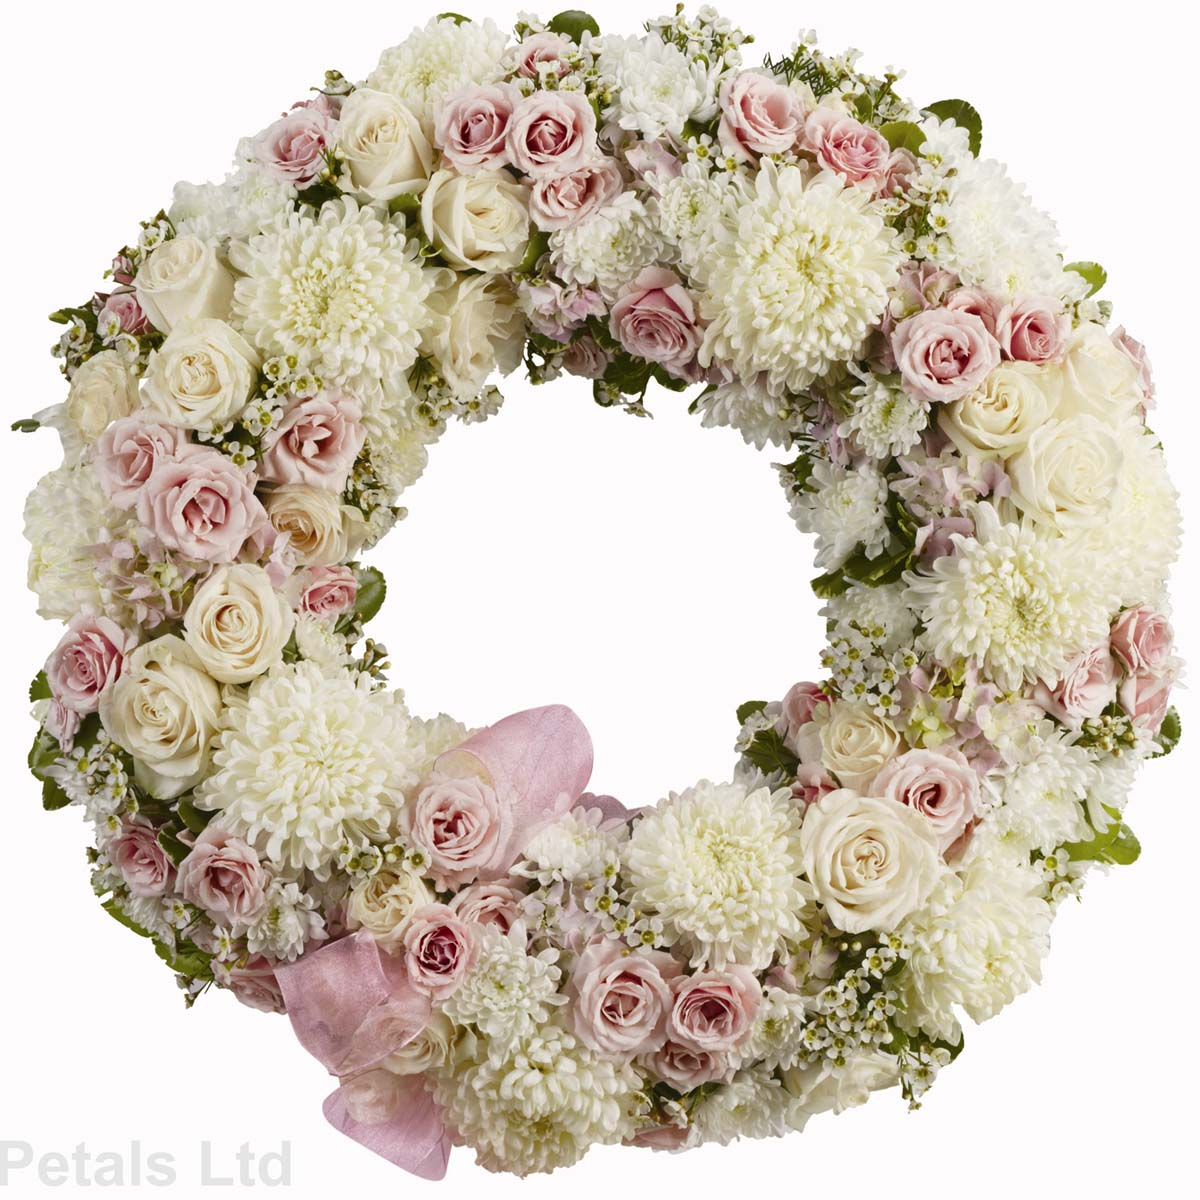 Peace Eternal Funeral Wreath Delivery Available